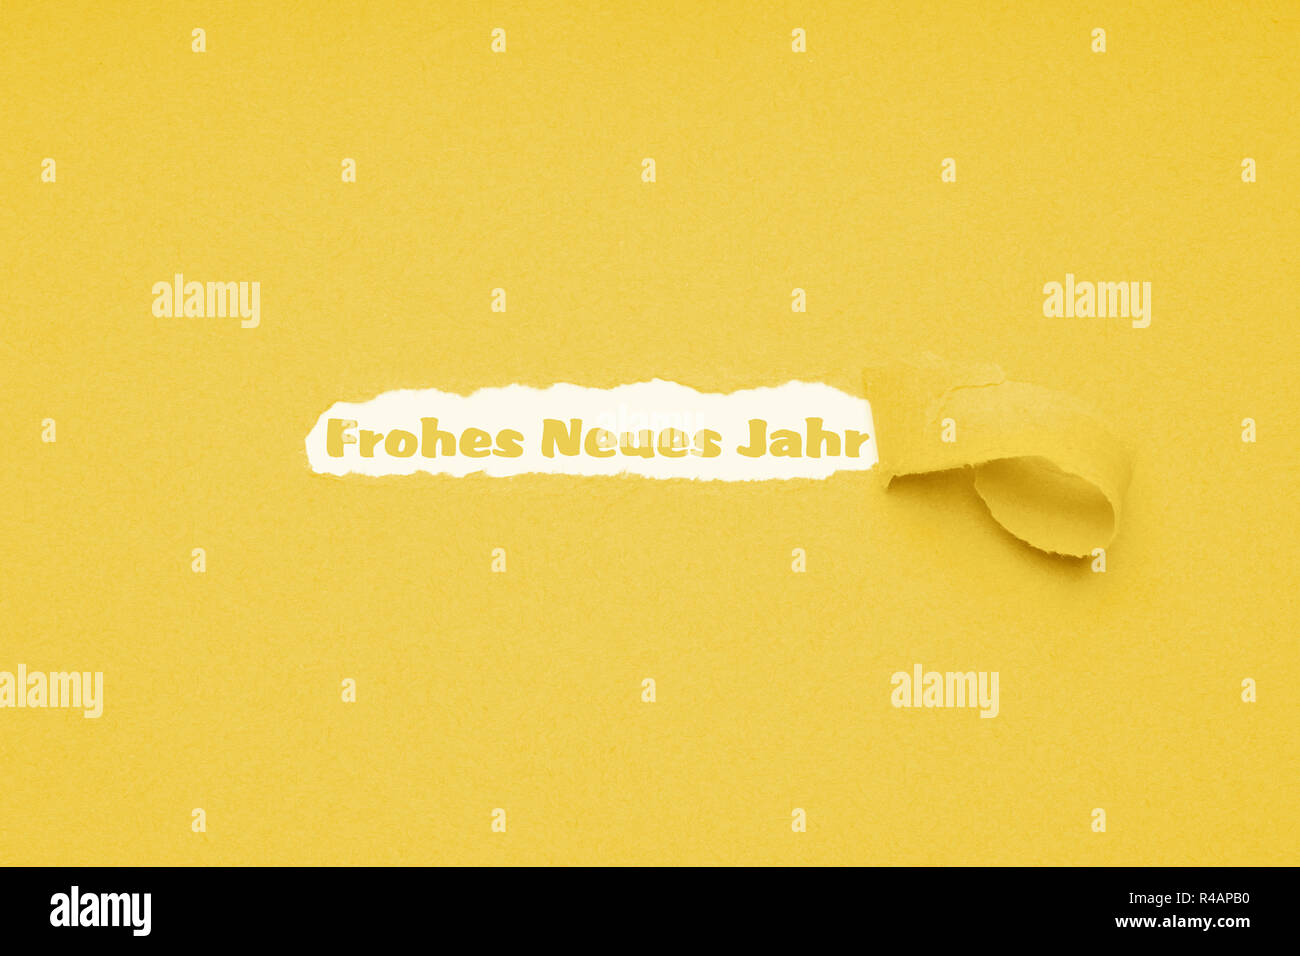 Frohes neues Jahr means happy new year in German - text seen through hole ripped in yellow paper background - Stock Image